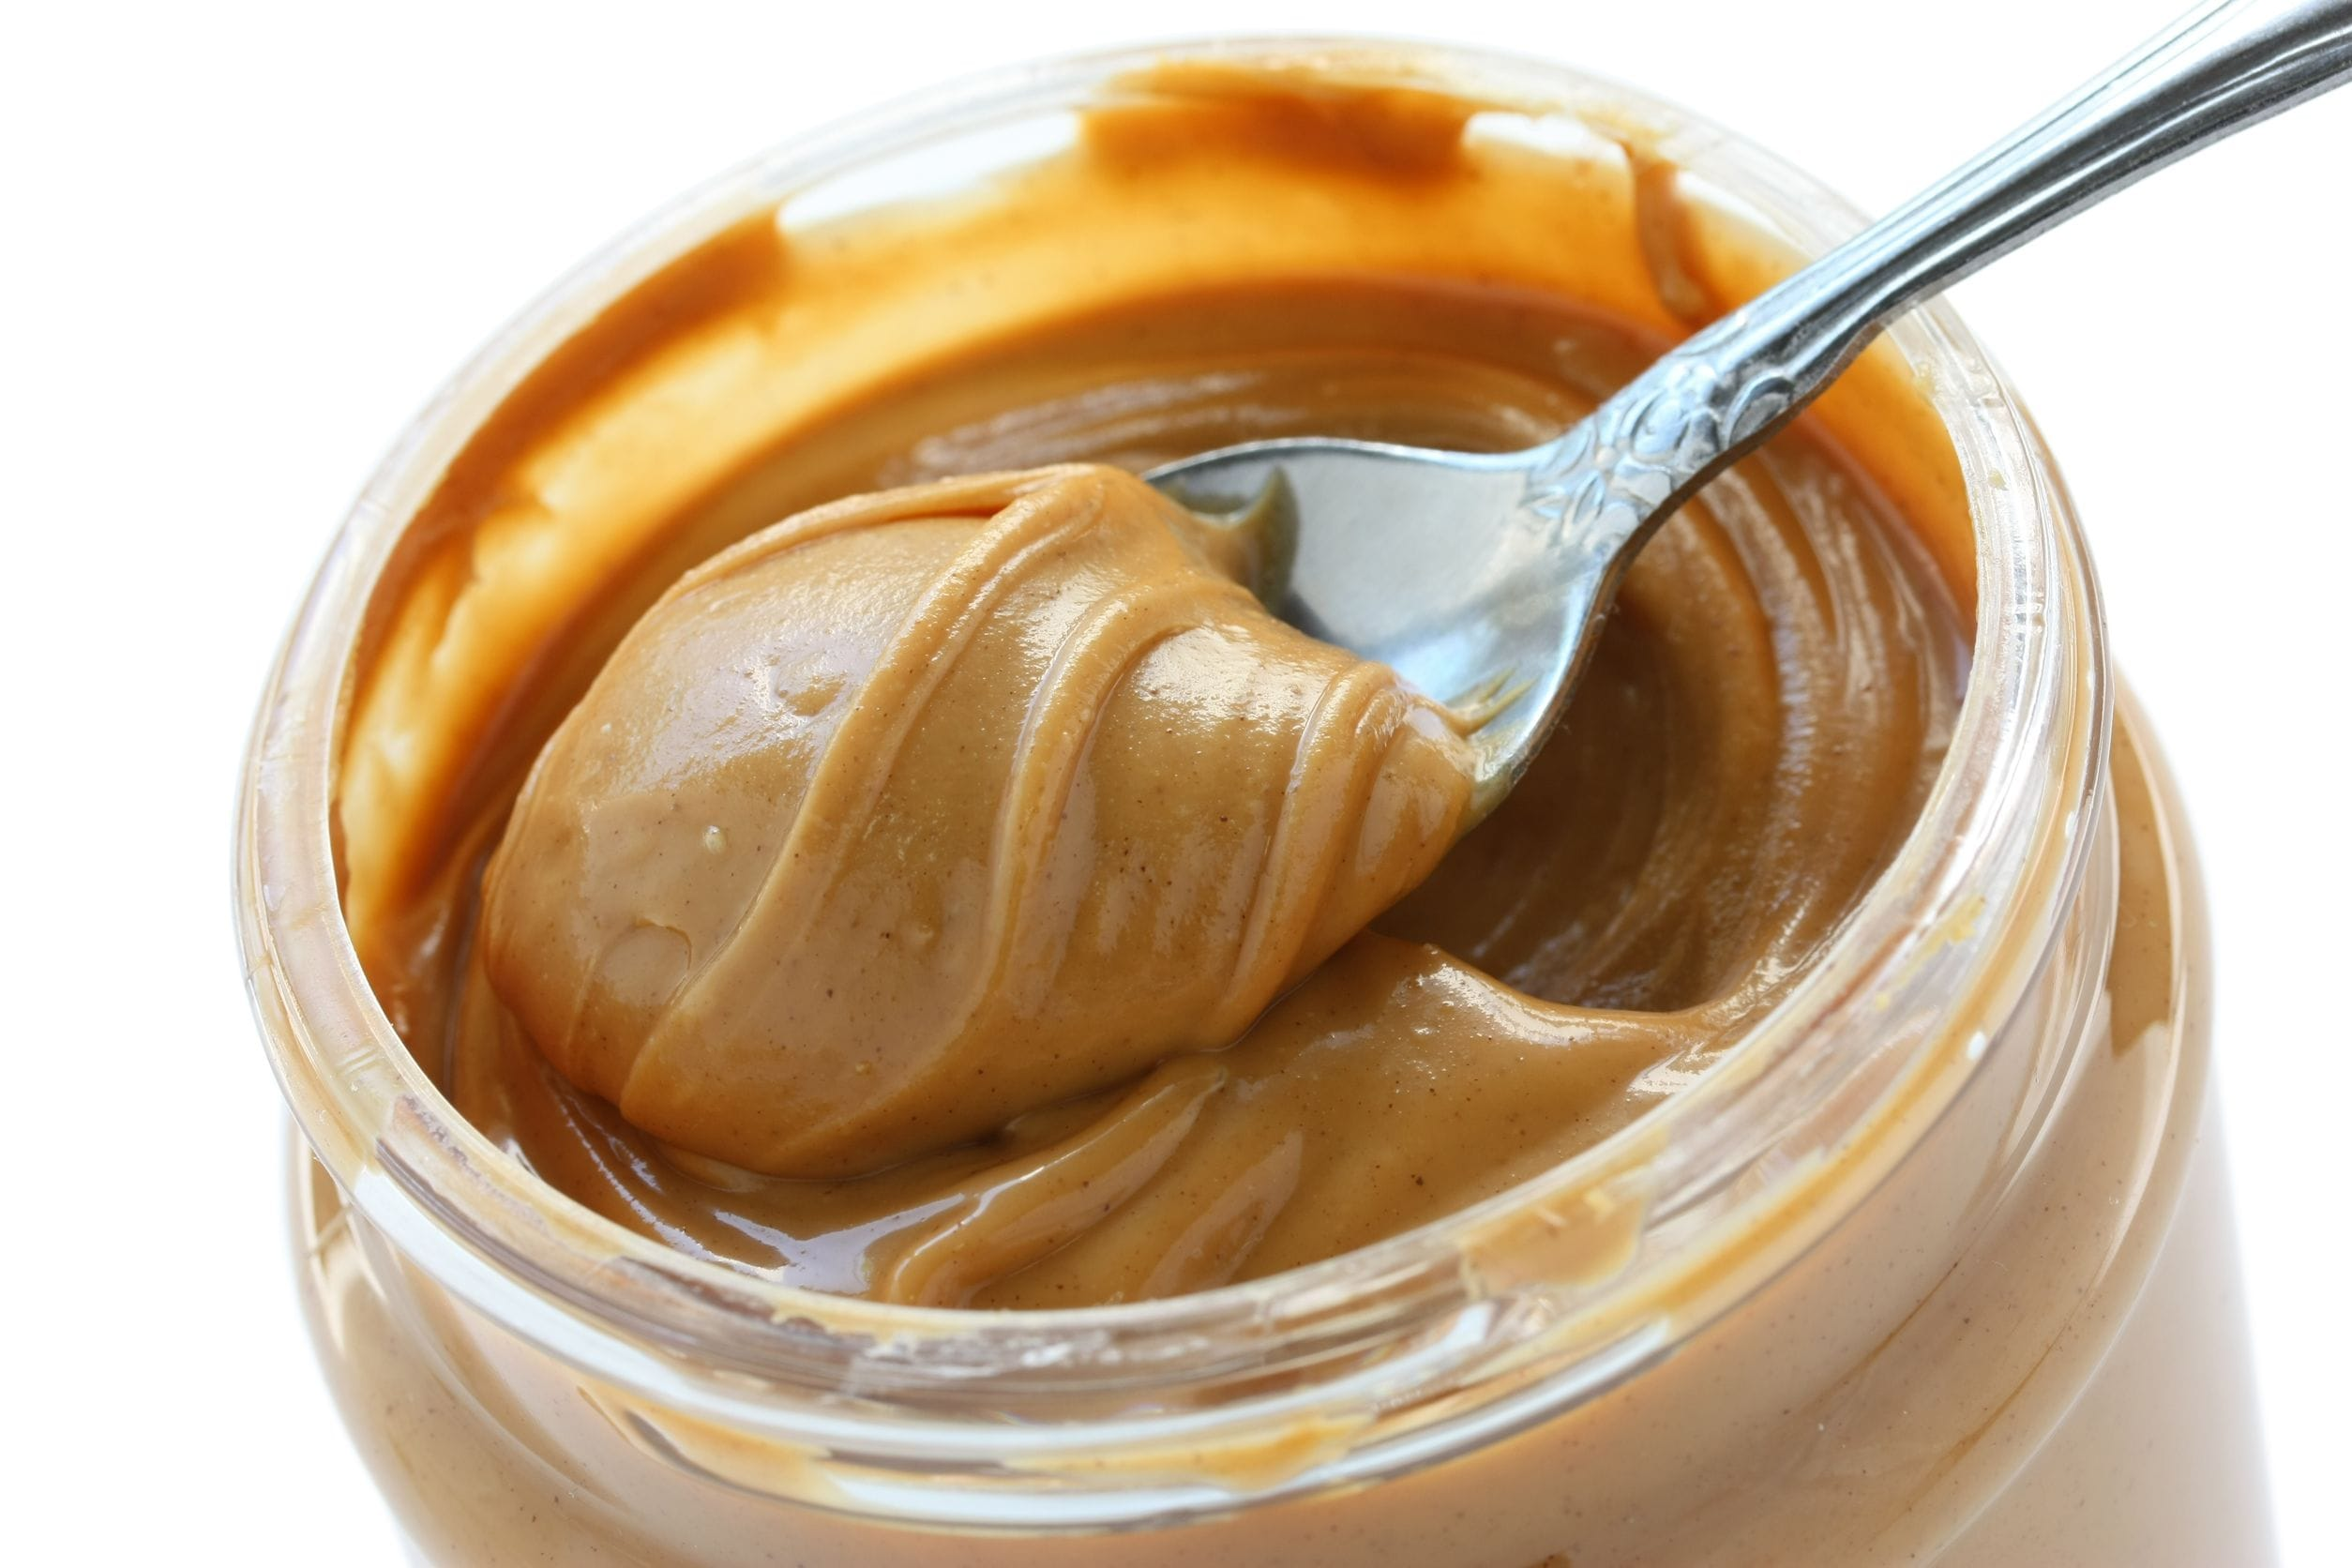 Is Peanut Butter A High Protein Food